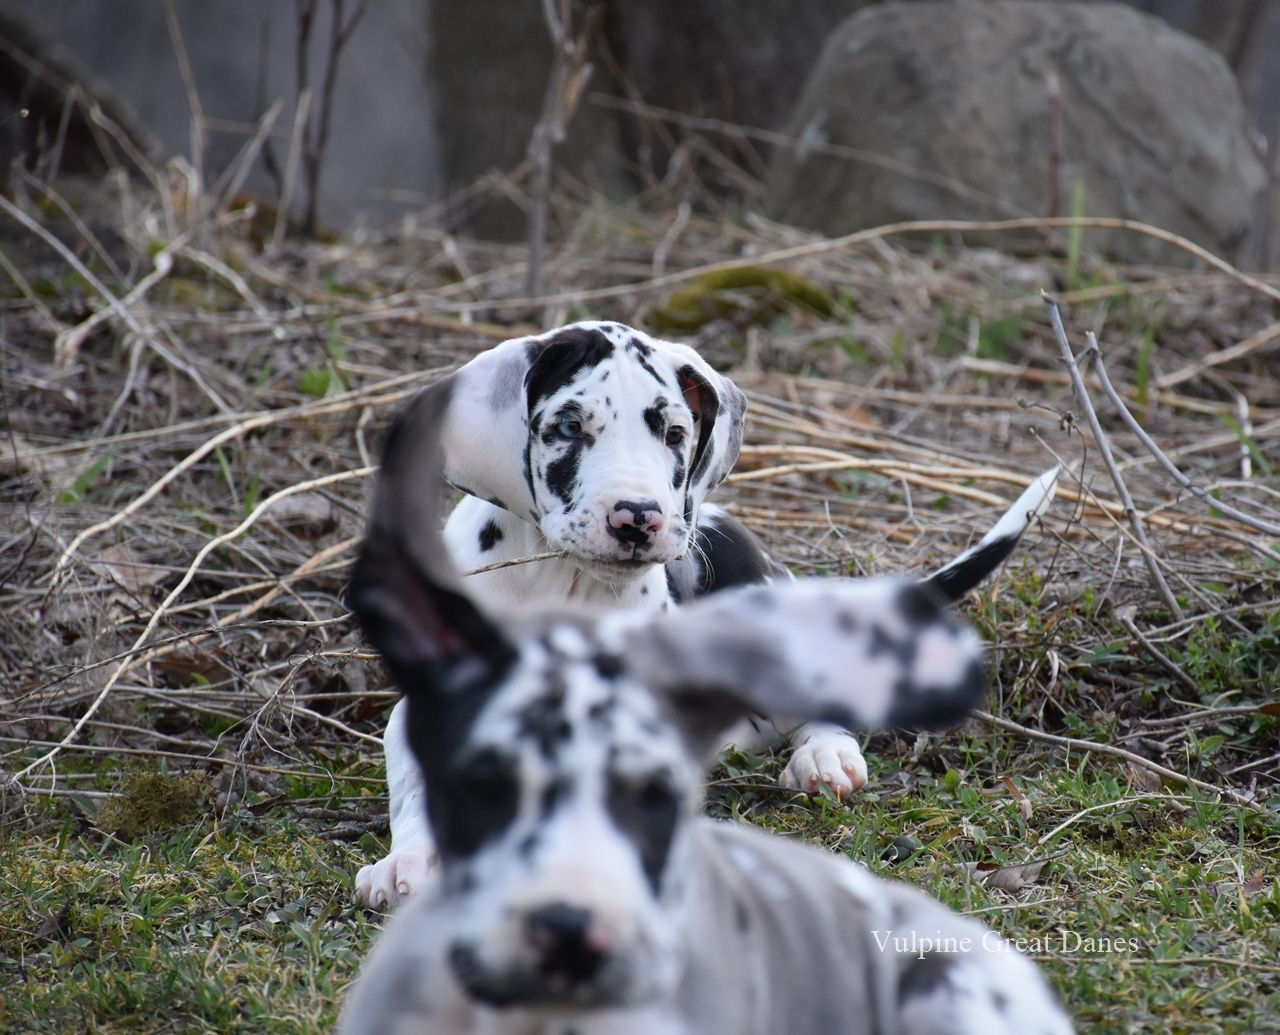 Pin By Vulpine Great Danes On Harlequin Great Dane Puppies